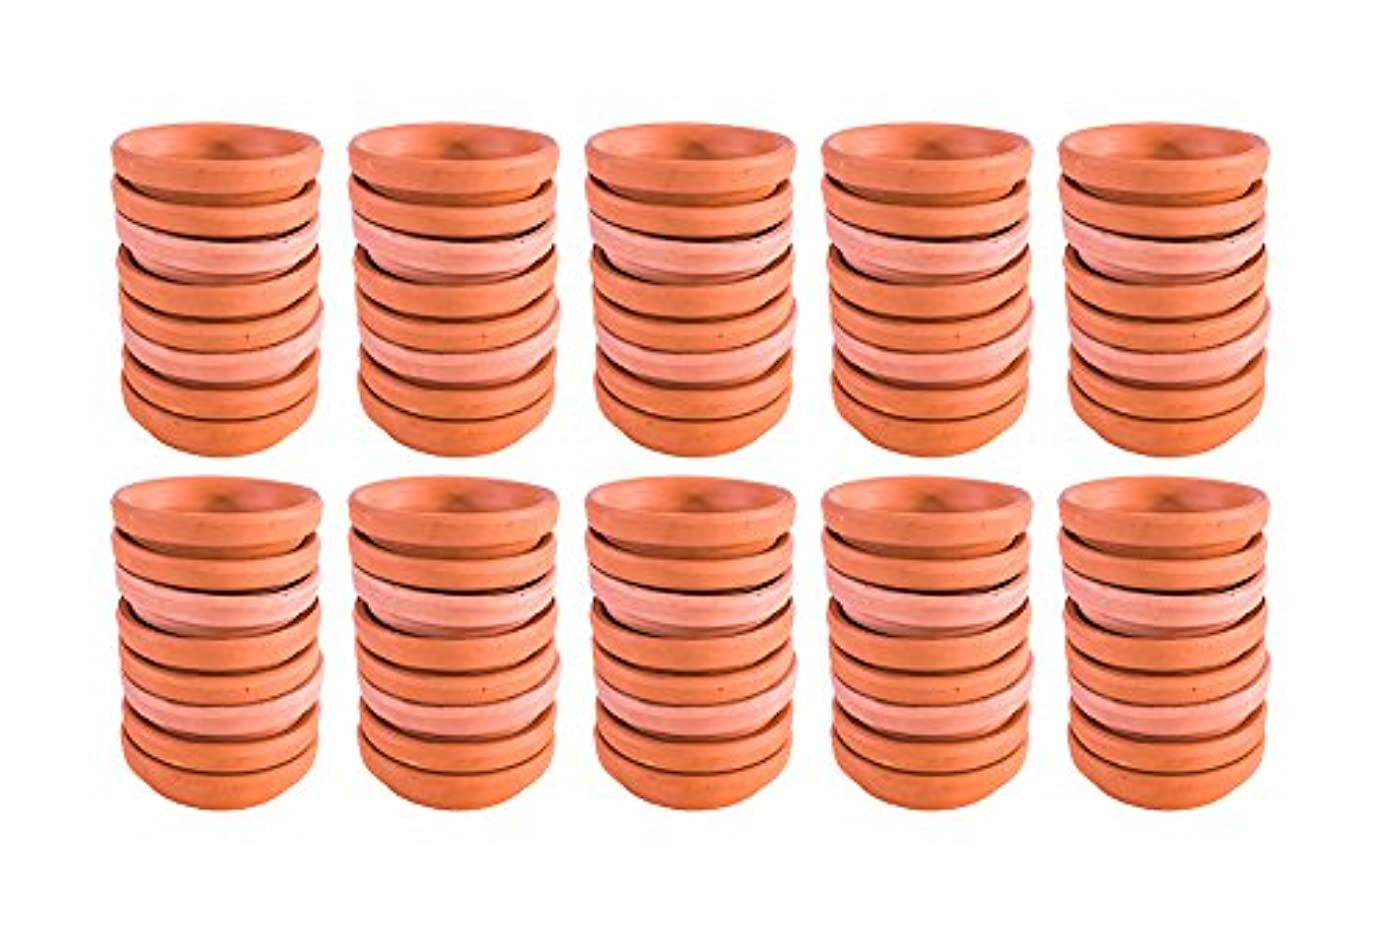 Pennington Terra Cotta Saucer 2 Inch Diameter (Case of 80) oji9873224